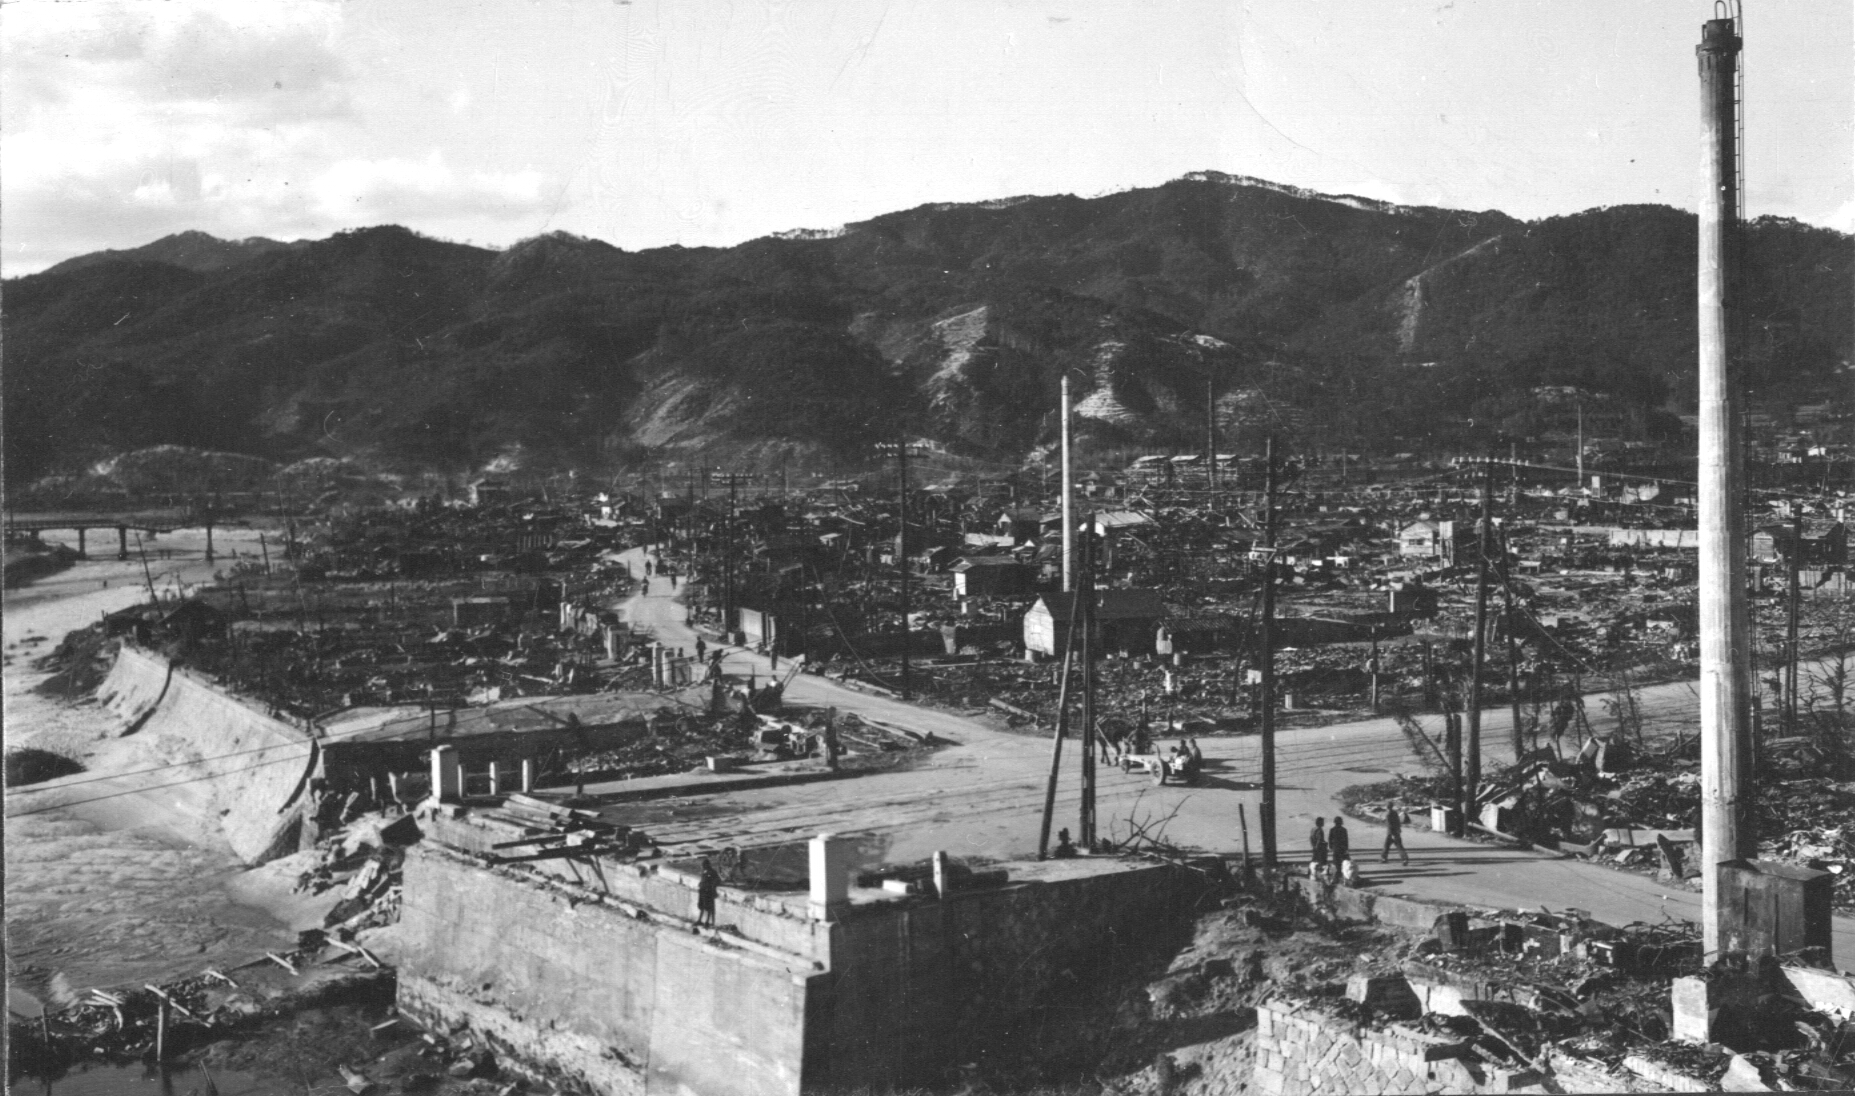 Photograph of Hiroshima after atomic bomb. An intersection of two roads is in the foreground and mountains are in the background.